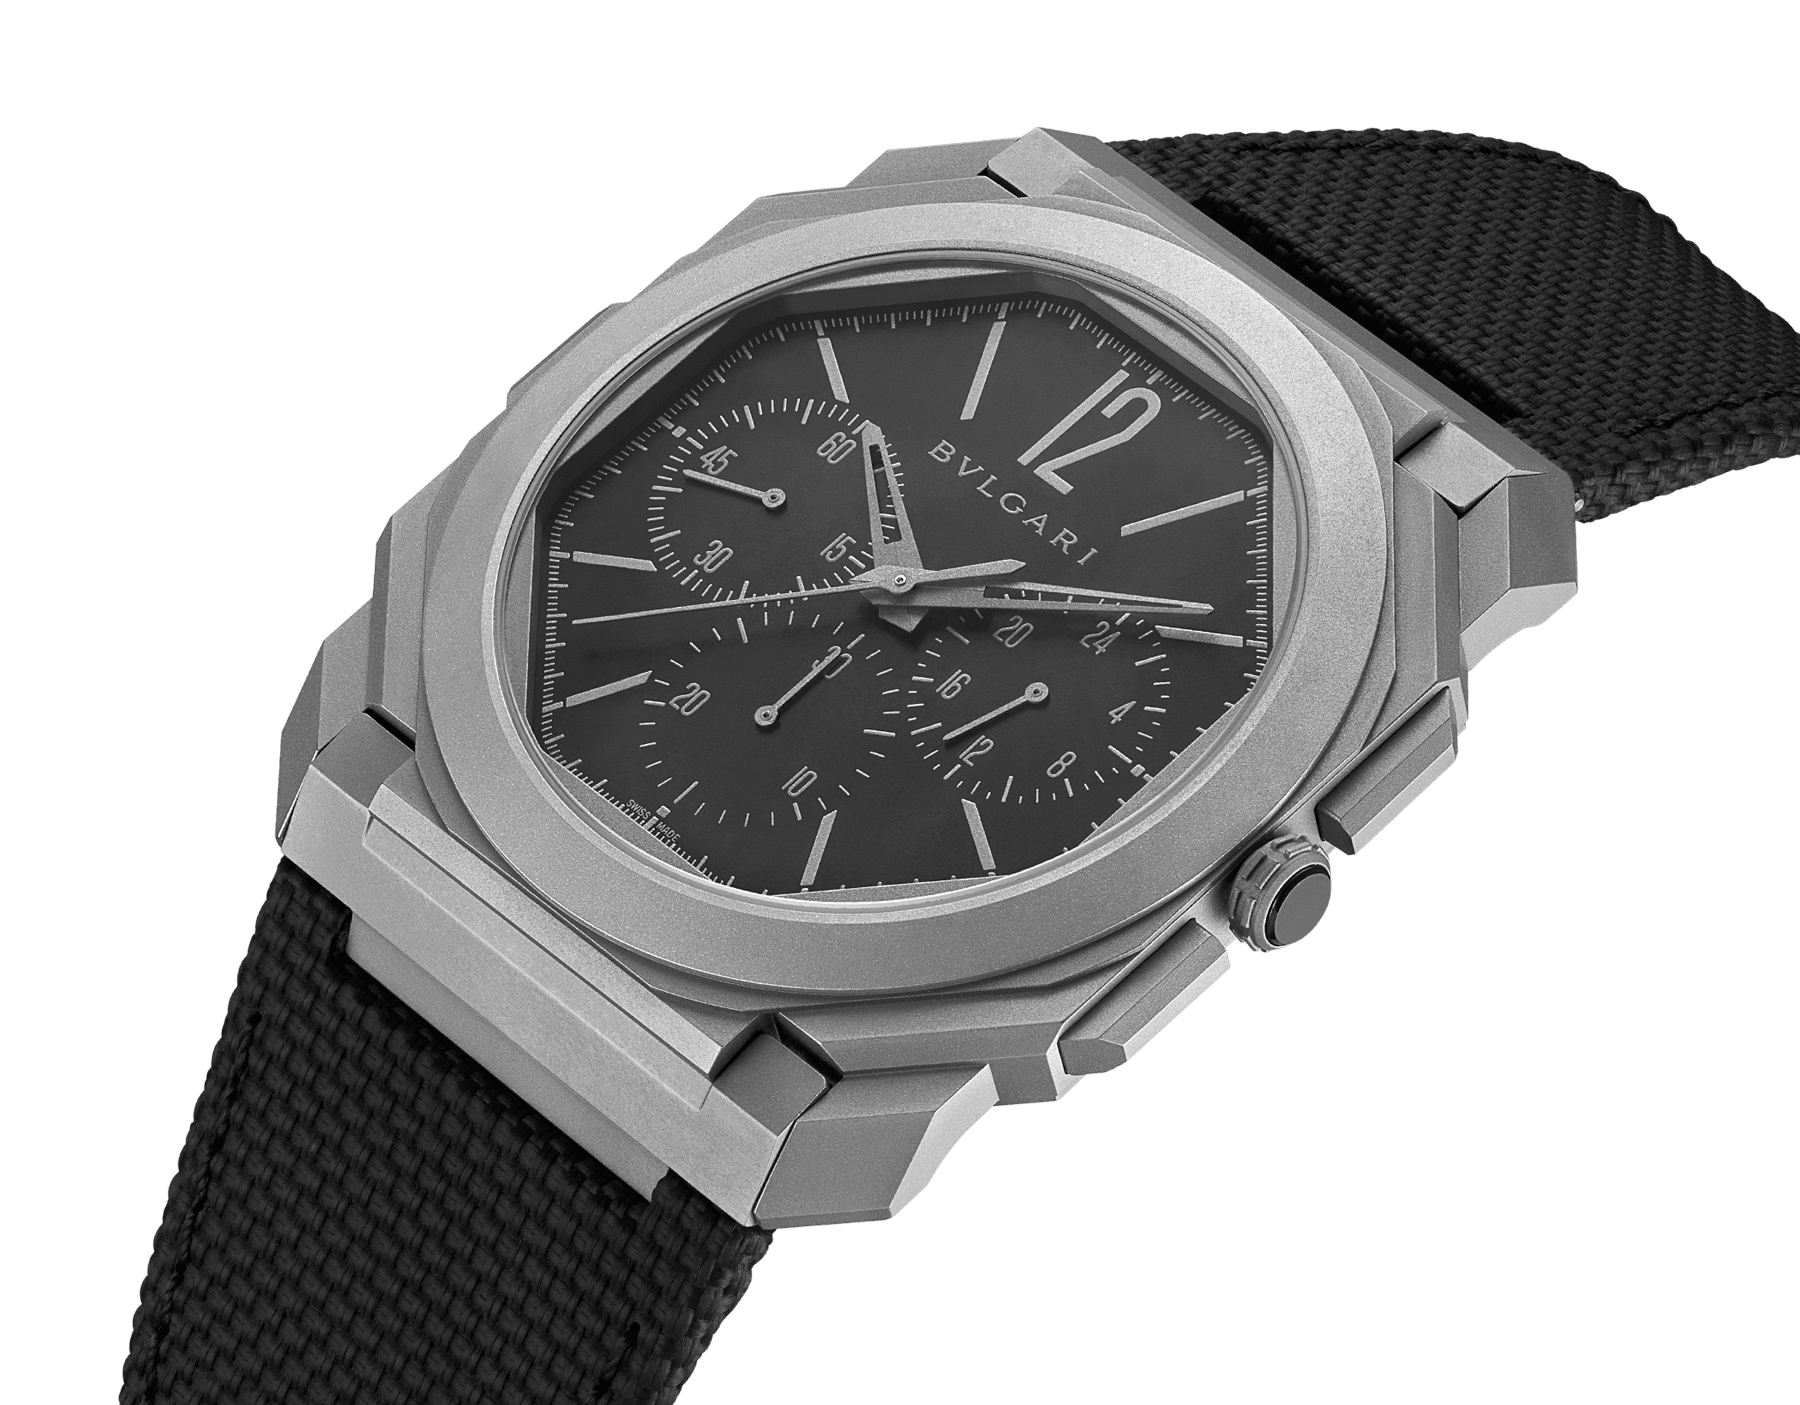 Octo Finissimo Chrono GMT watch with extra-thin mechanical manufacture chronograph and GMT movement, automatic winding with platinum peripheral rotor, titanium case, transparent case back, black dial and black rubber bracelet. Water-resistant up to 30 meters 103371 image 2